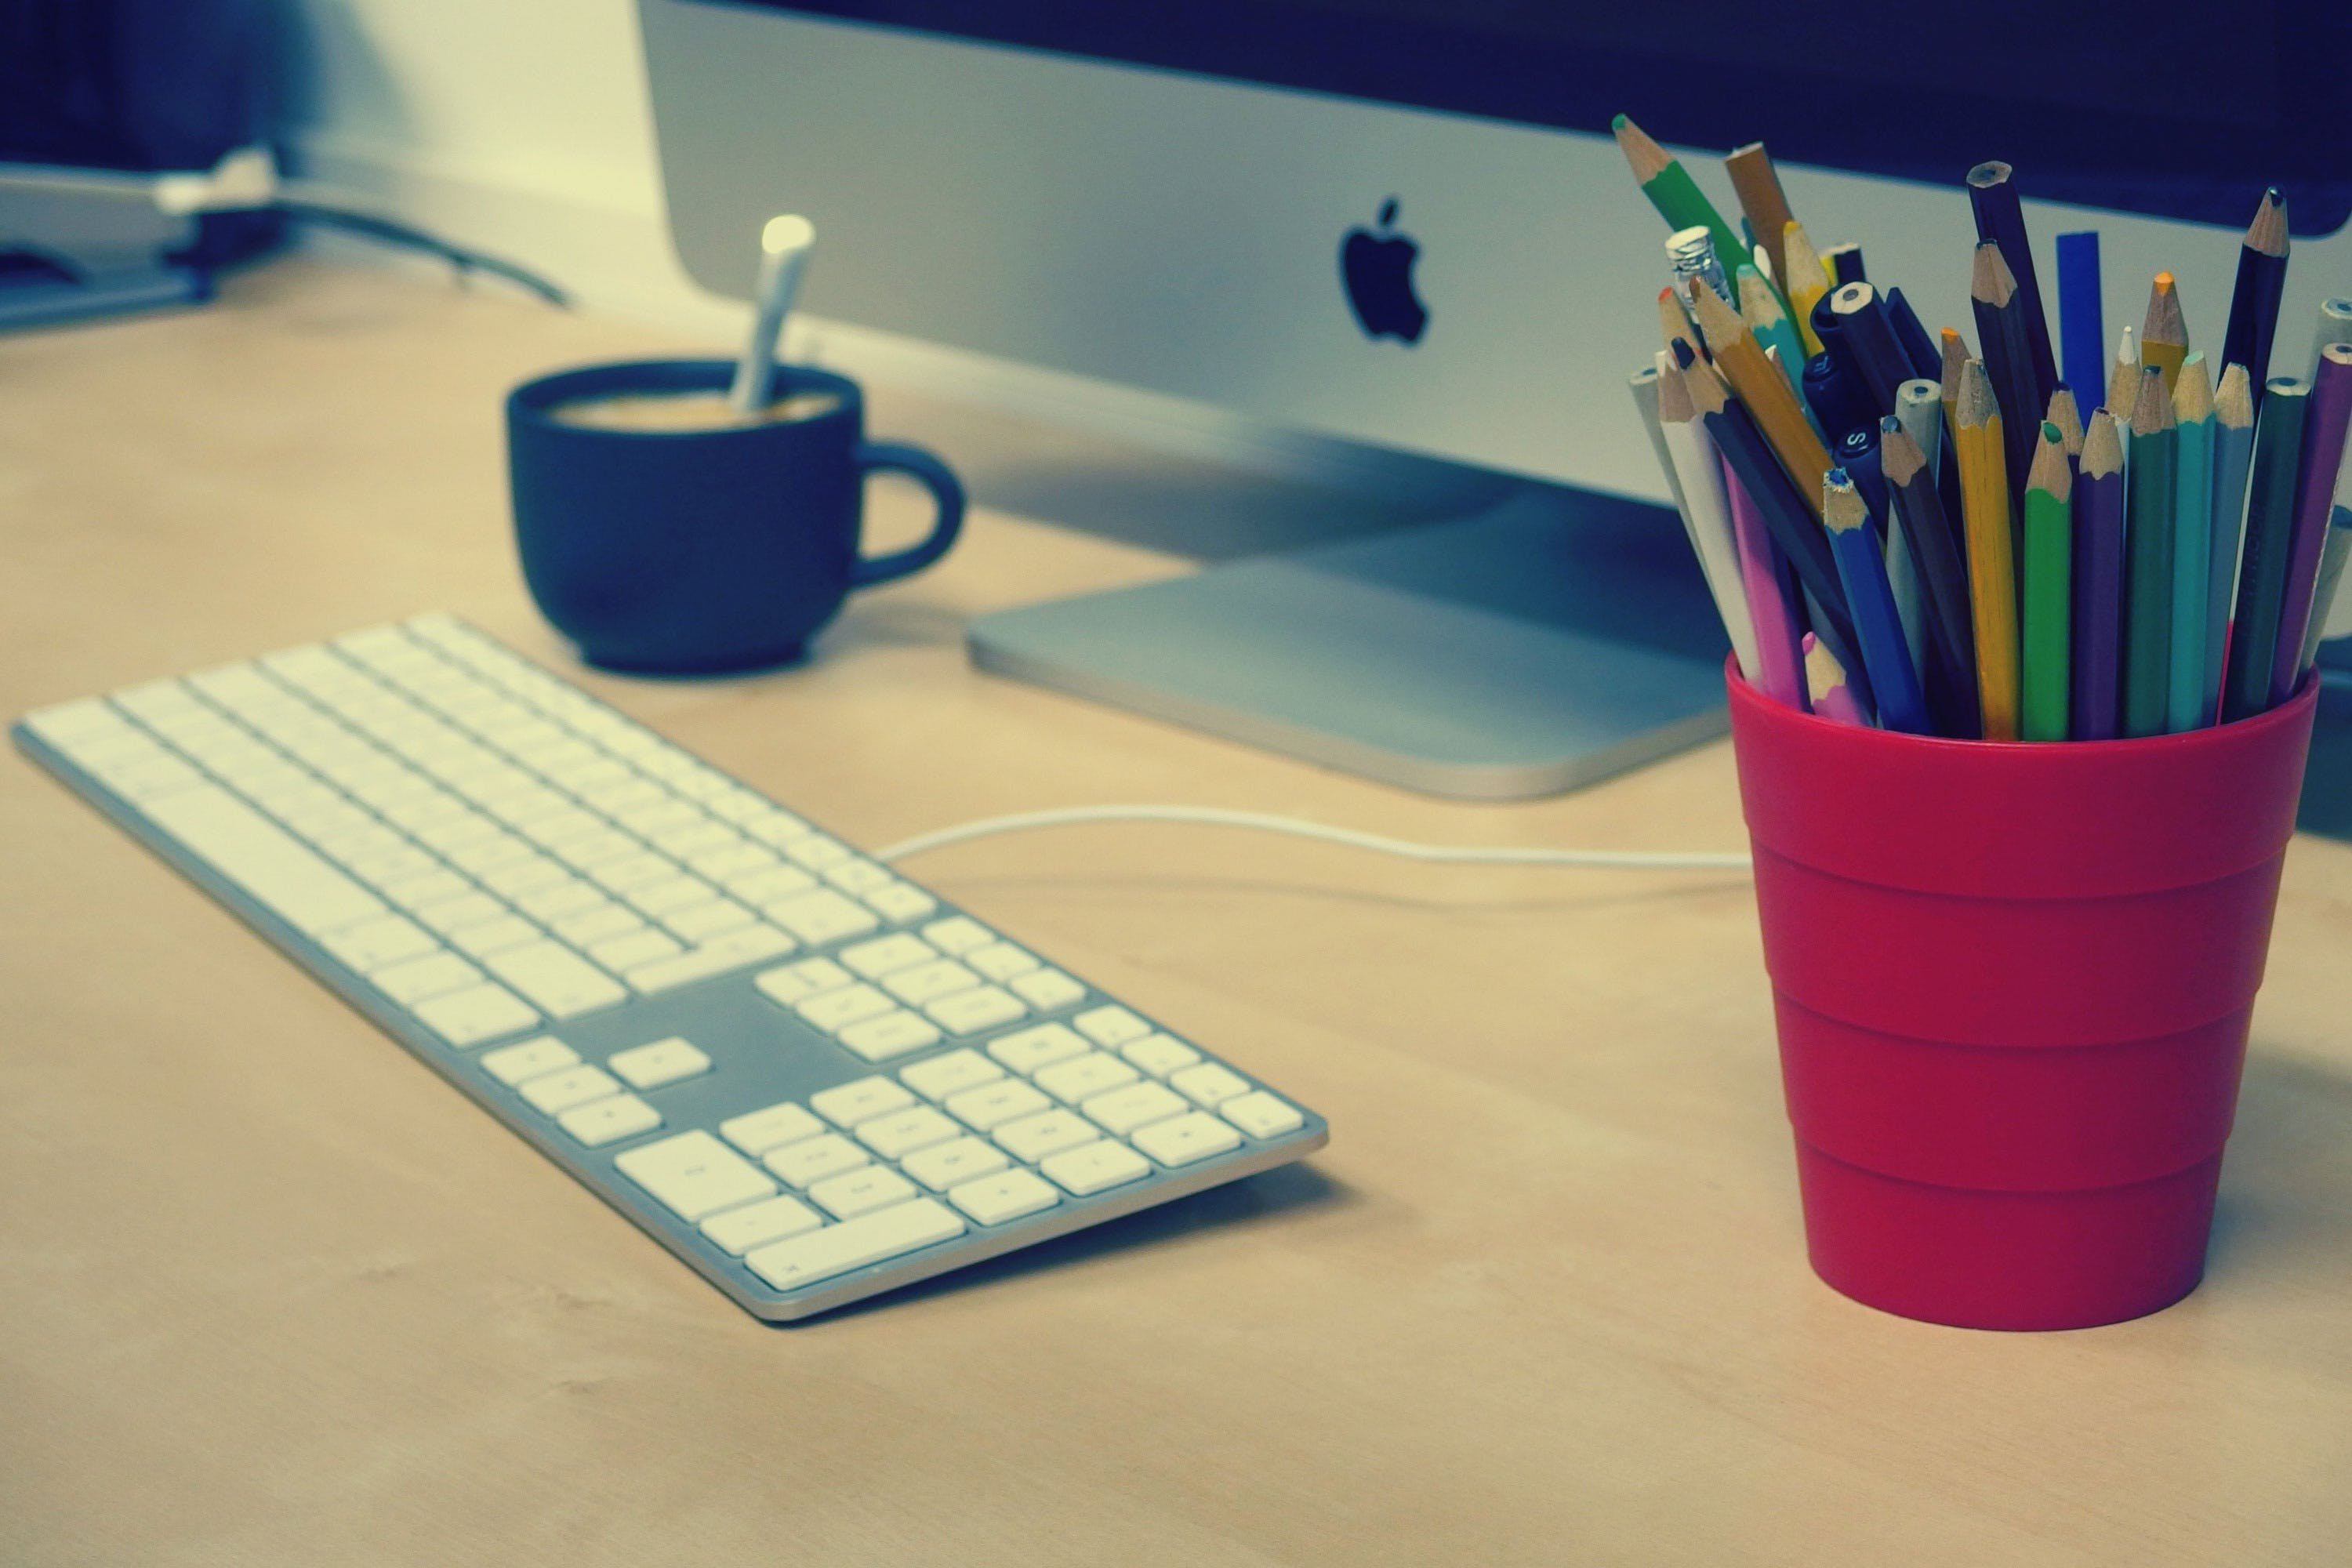 Blue Green and Black Colored Pencils on Red Plastic Cup Beside Silver Imac